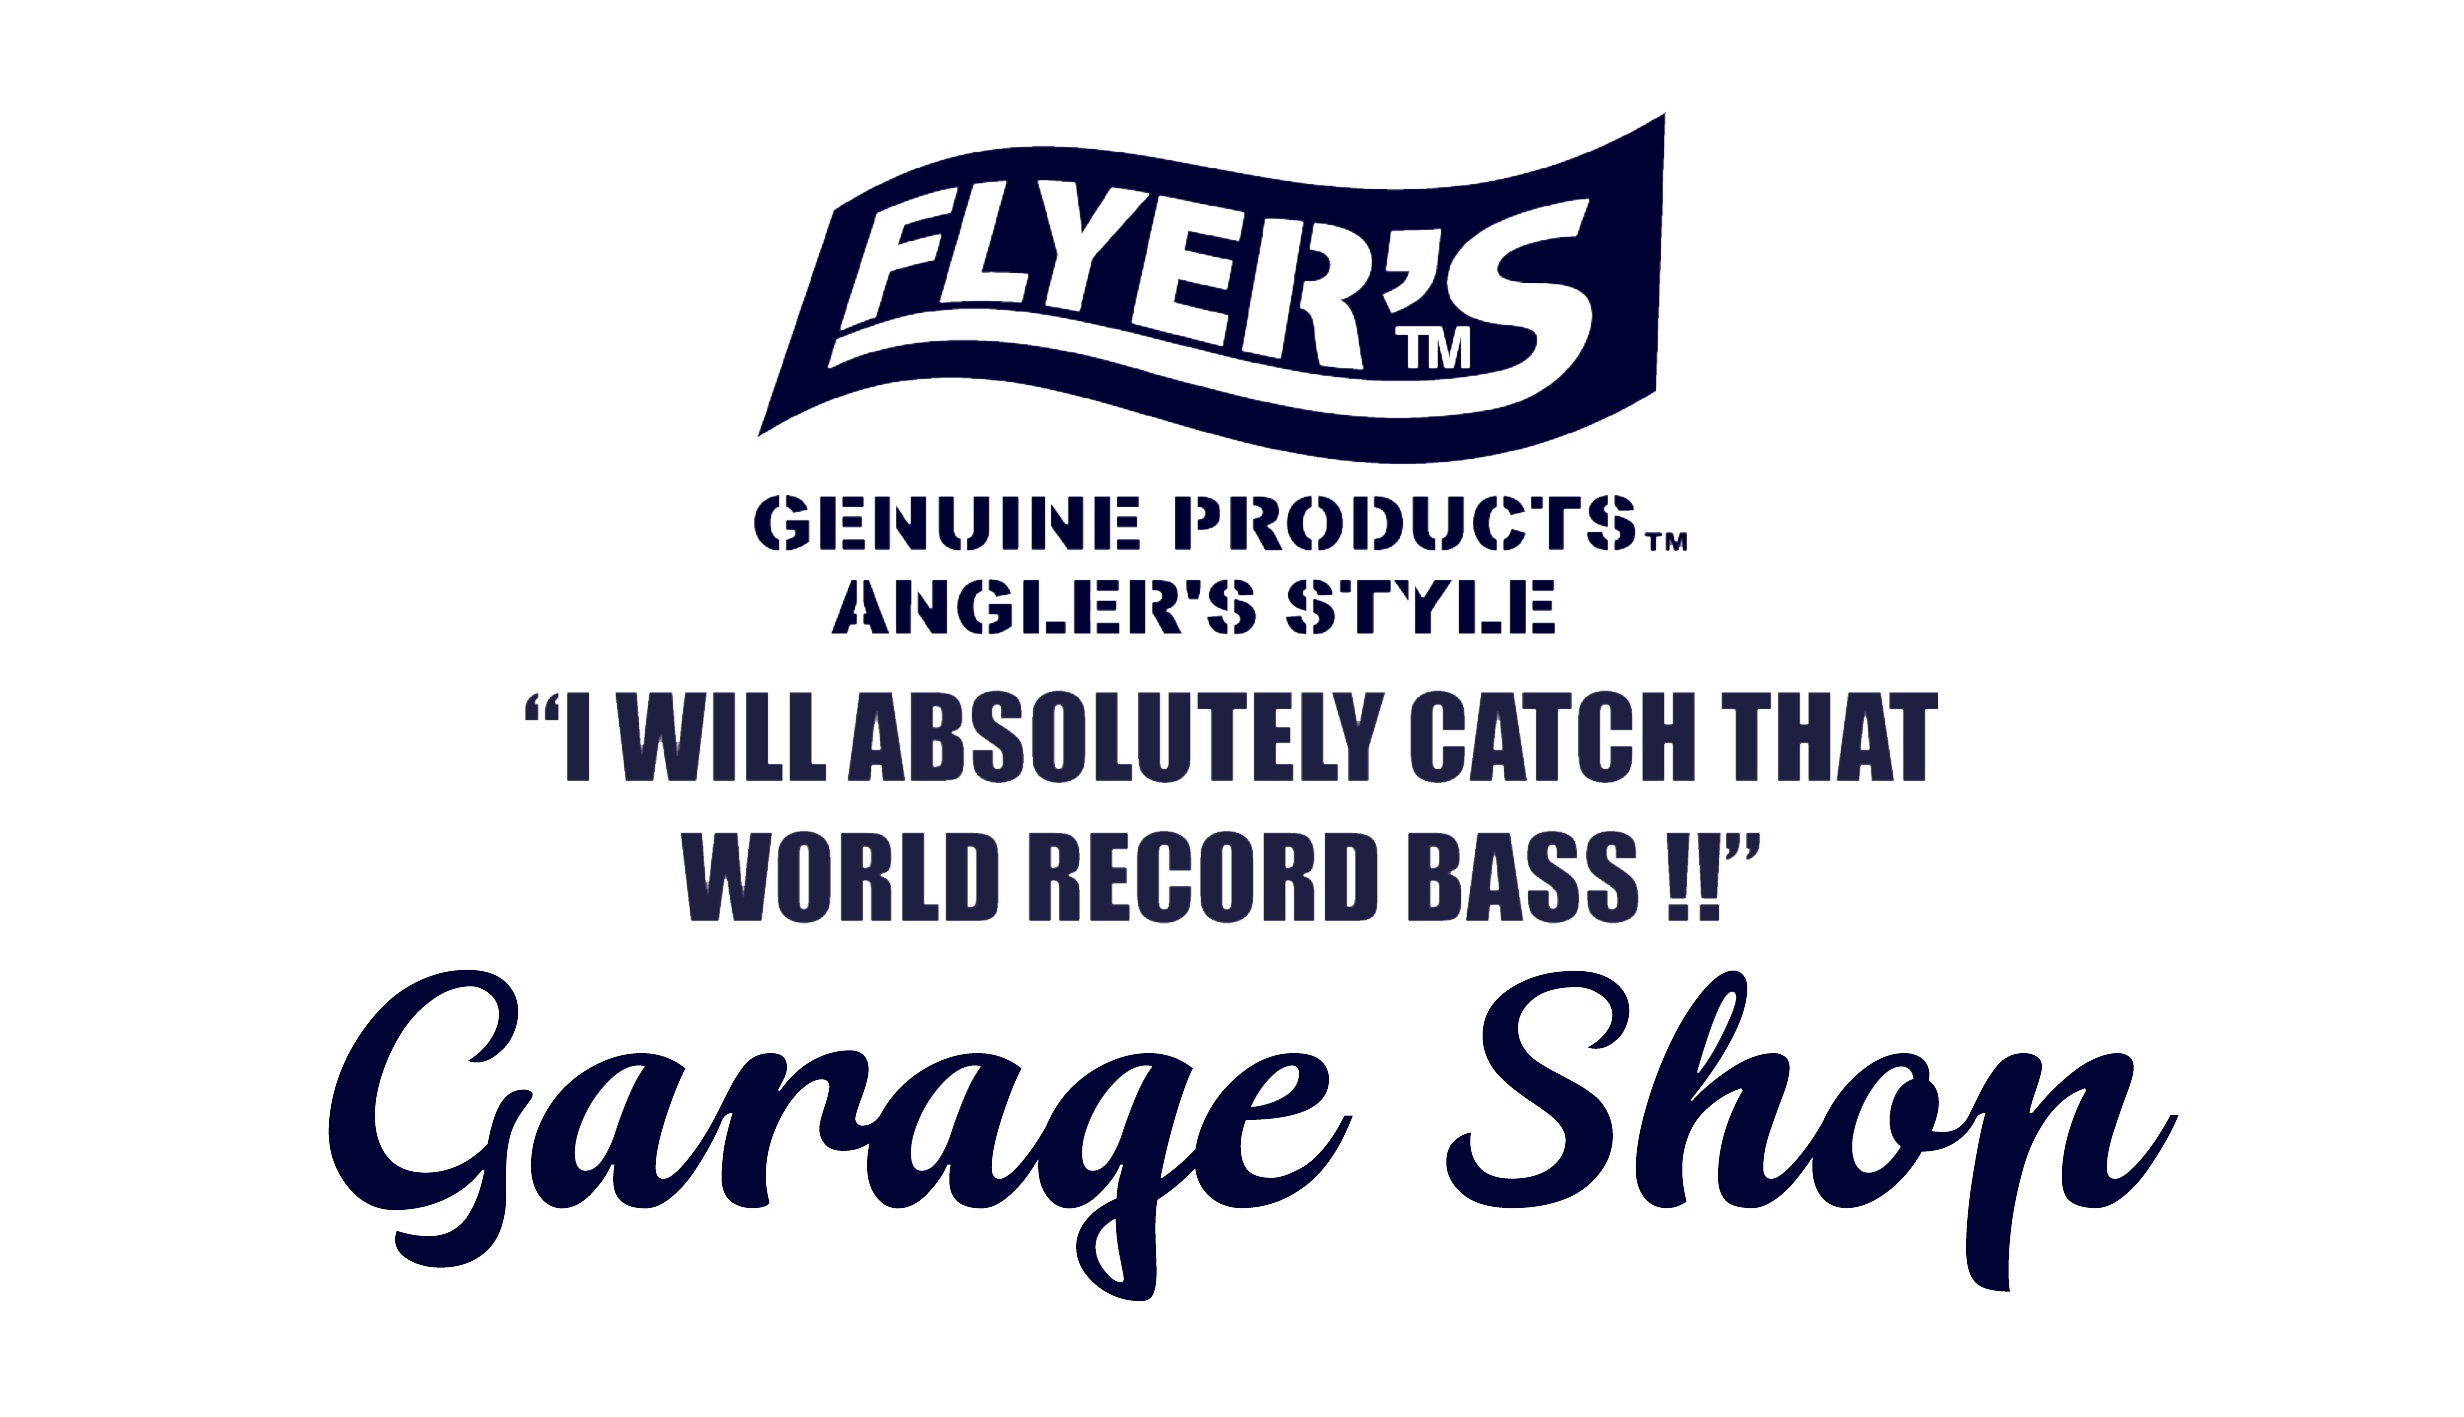 flyer s garage shop